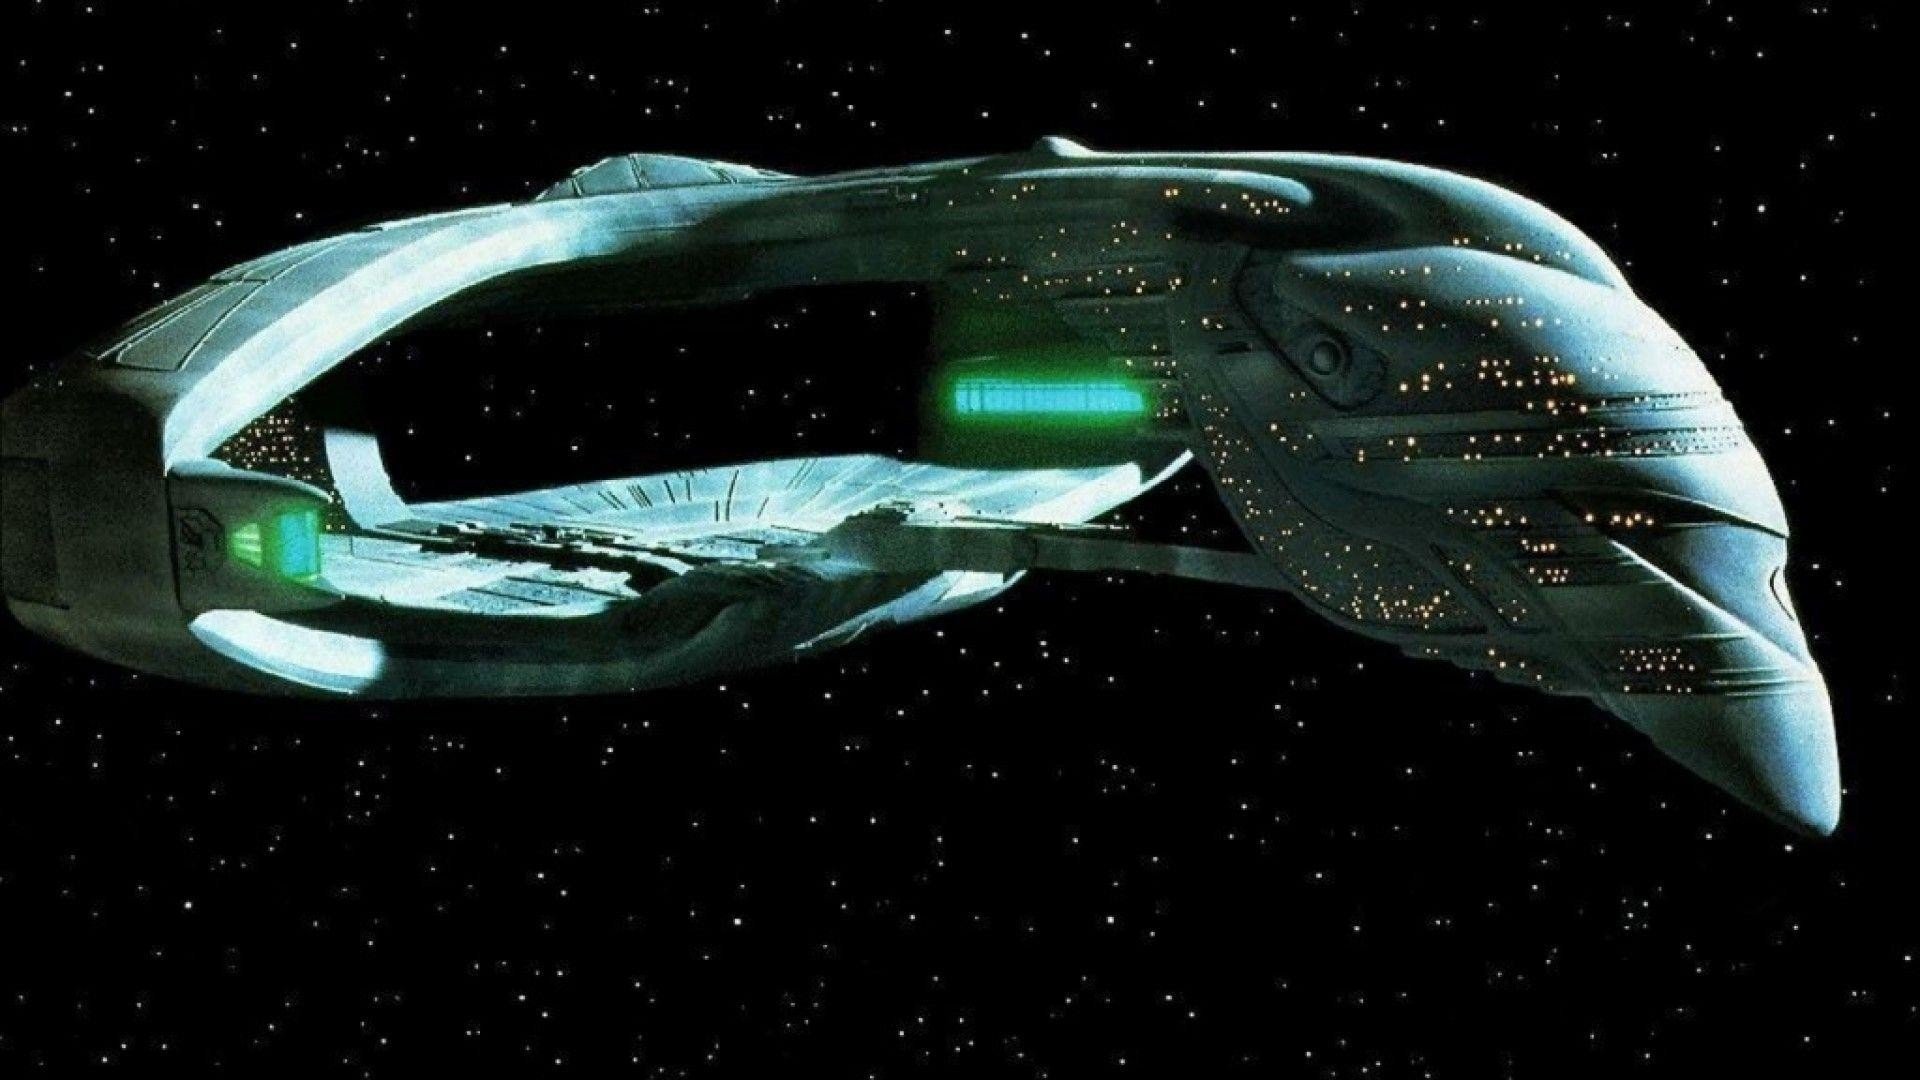 1920x1080 Star Trek 1107 Star Trek Wallpaper  | Hot HD Wallpaper